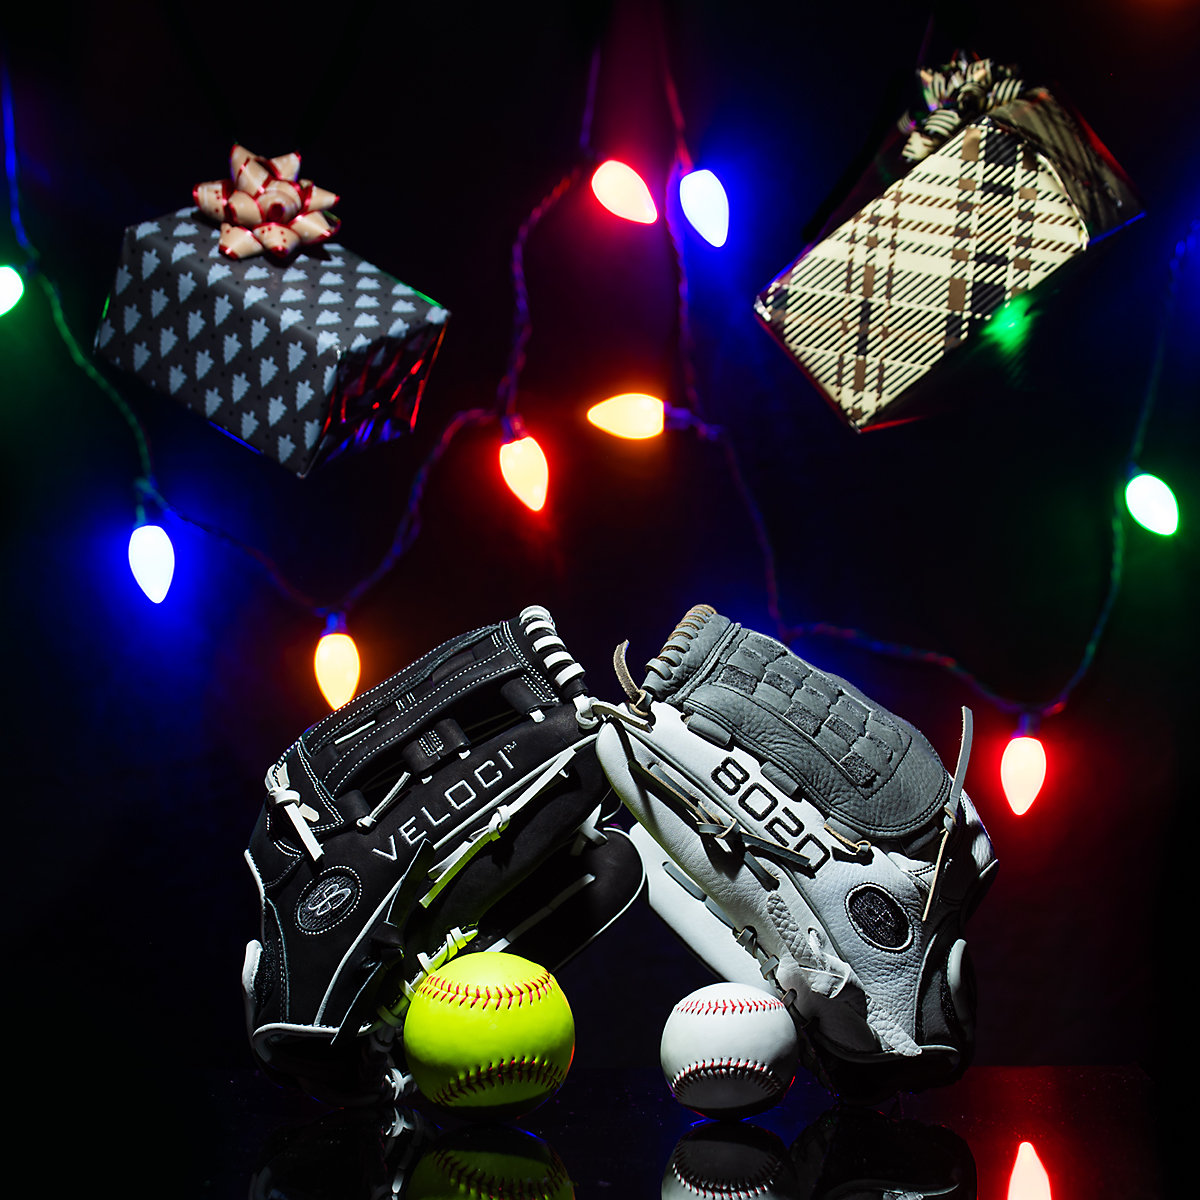 Baseball gloves and balls on display with holiday presents and lights